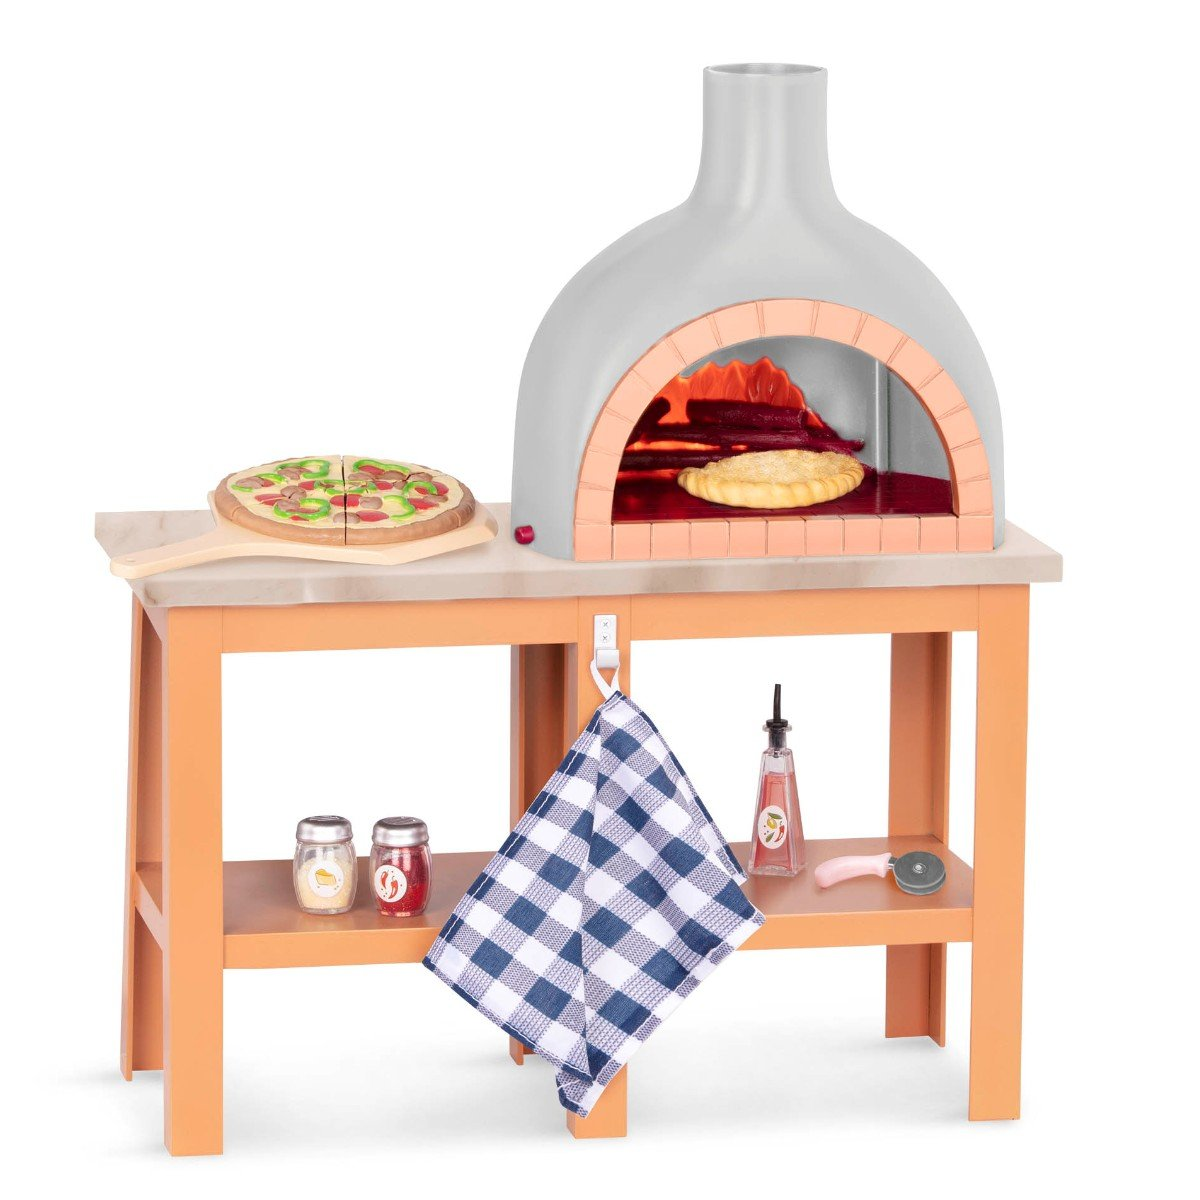 Our Generation - Pizza Oven Playset (737953)